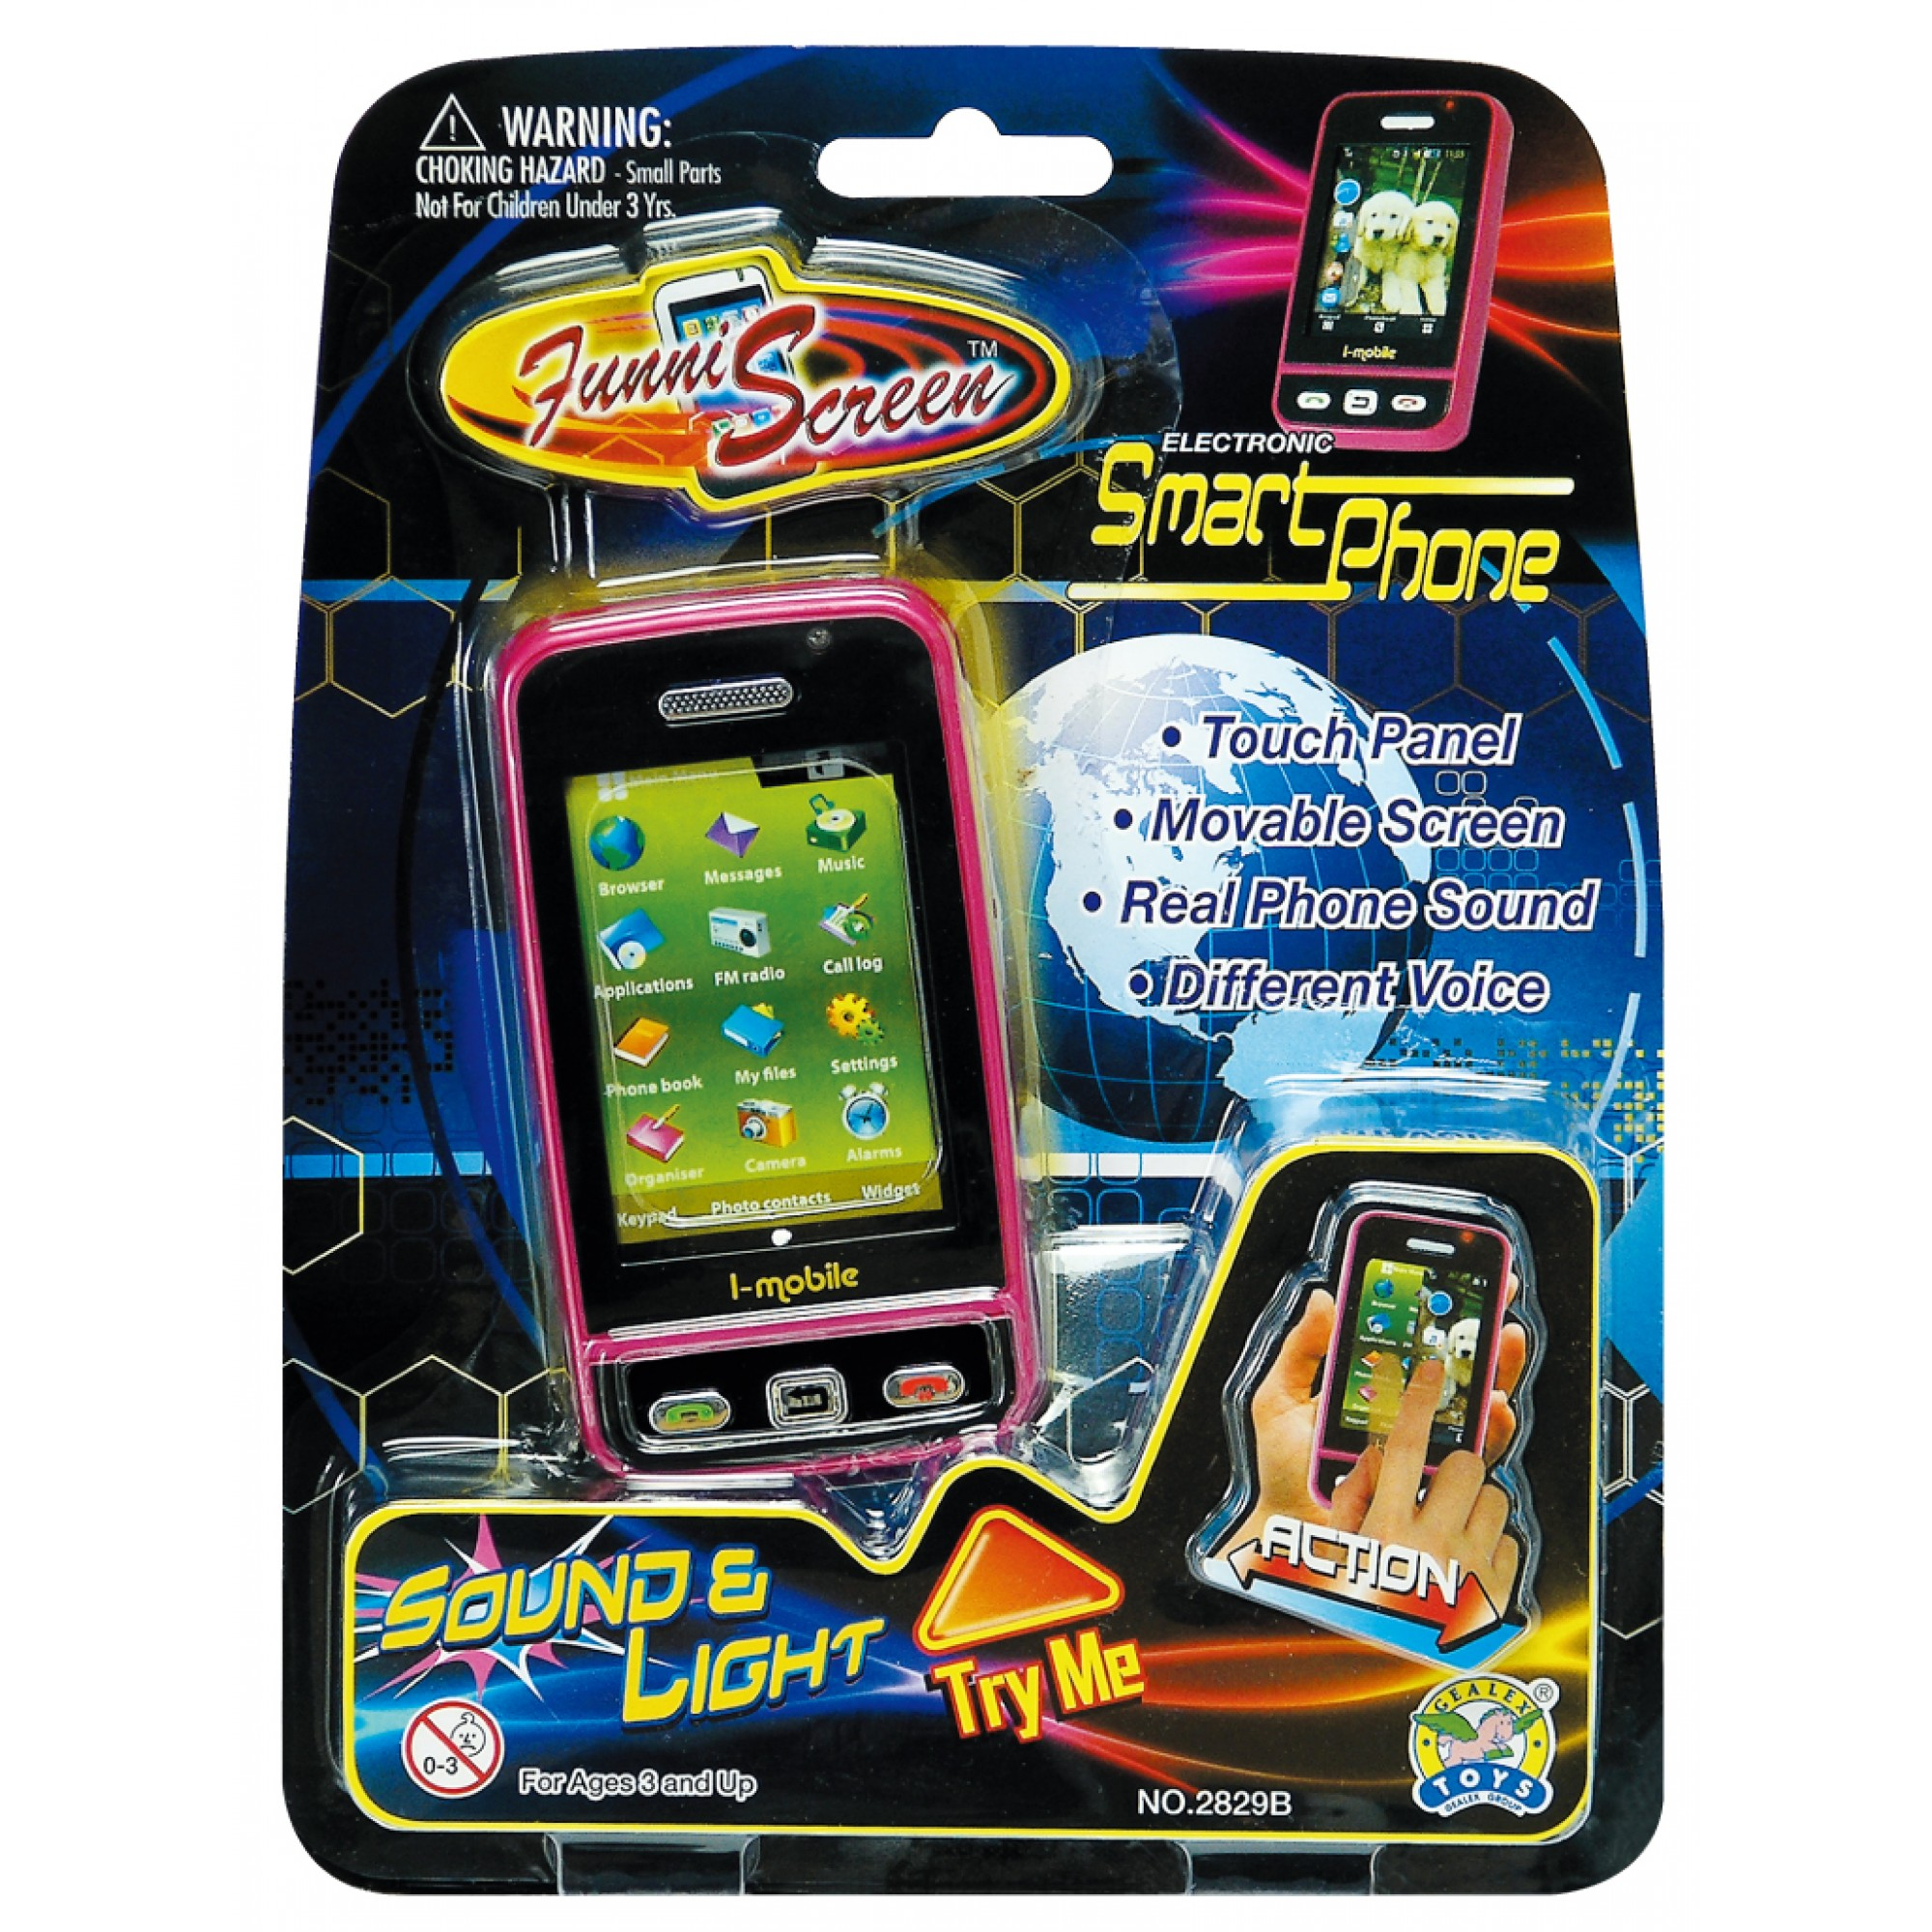 Touch Screen Mobile Phone (S)